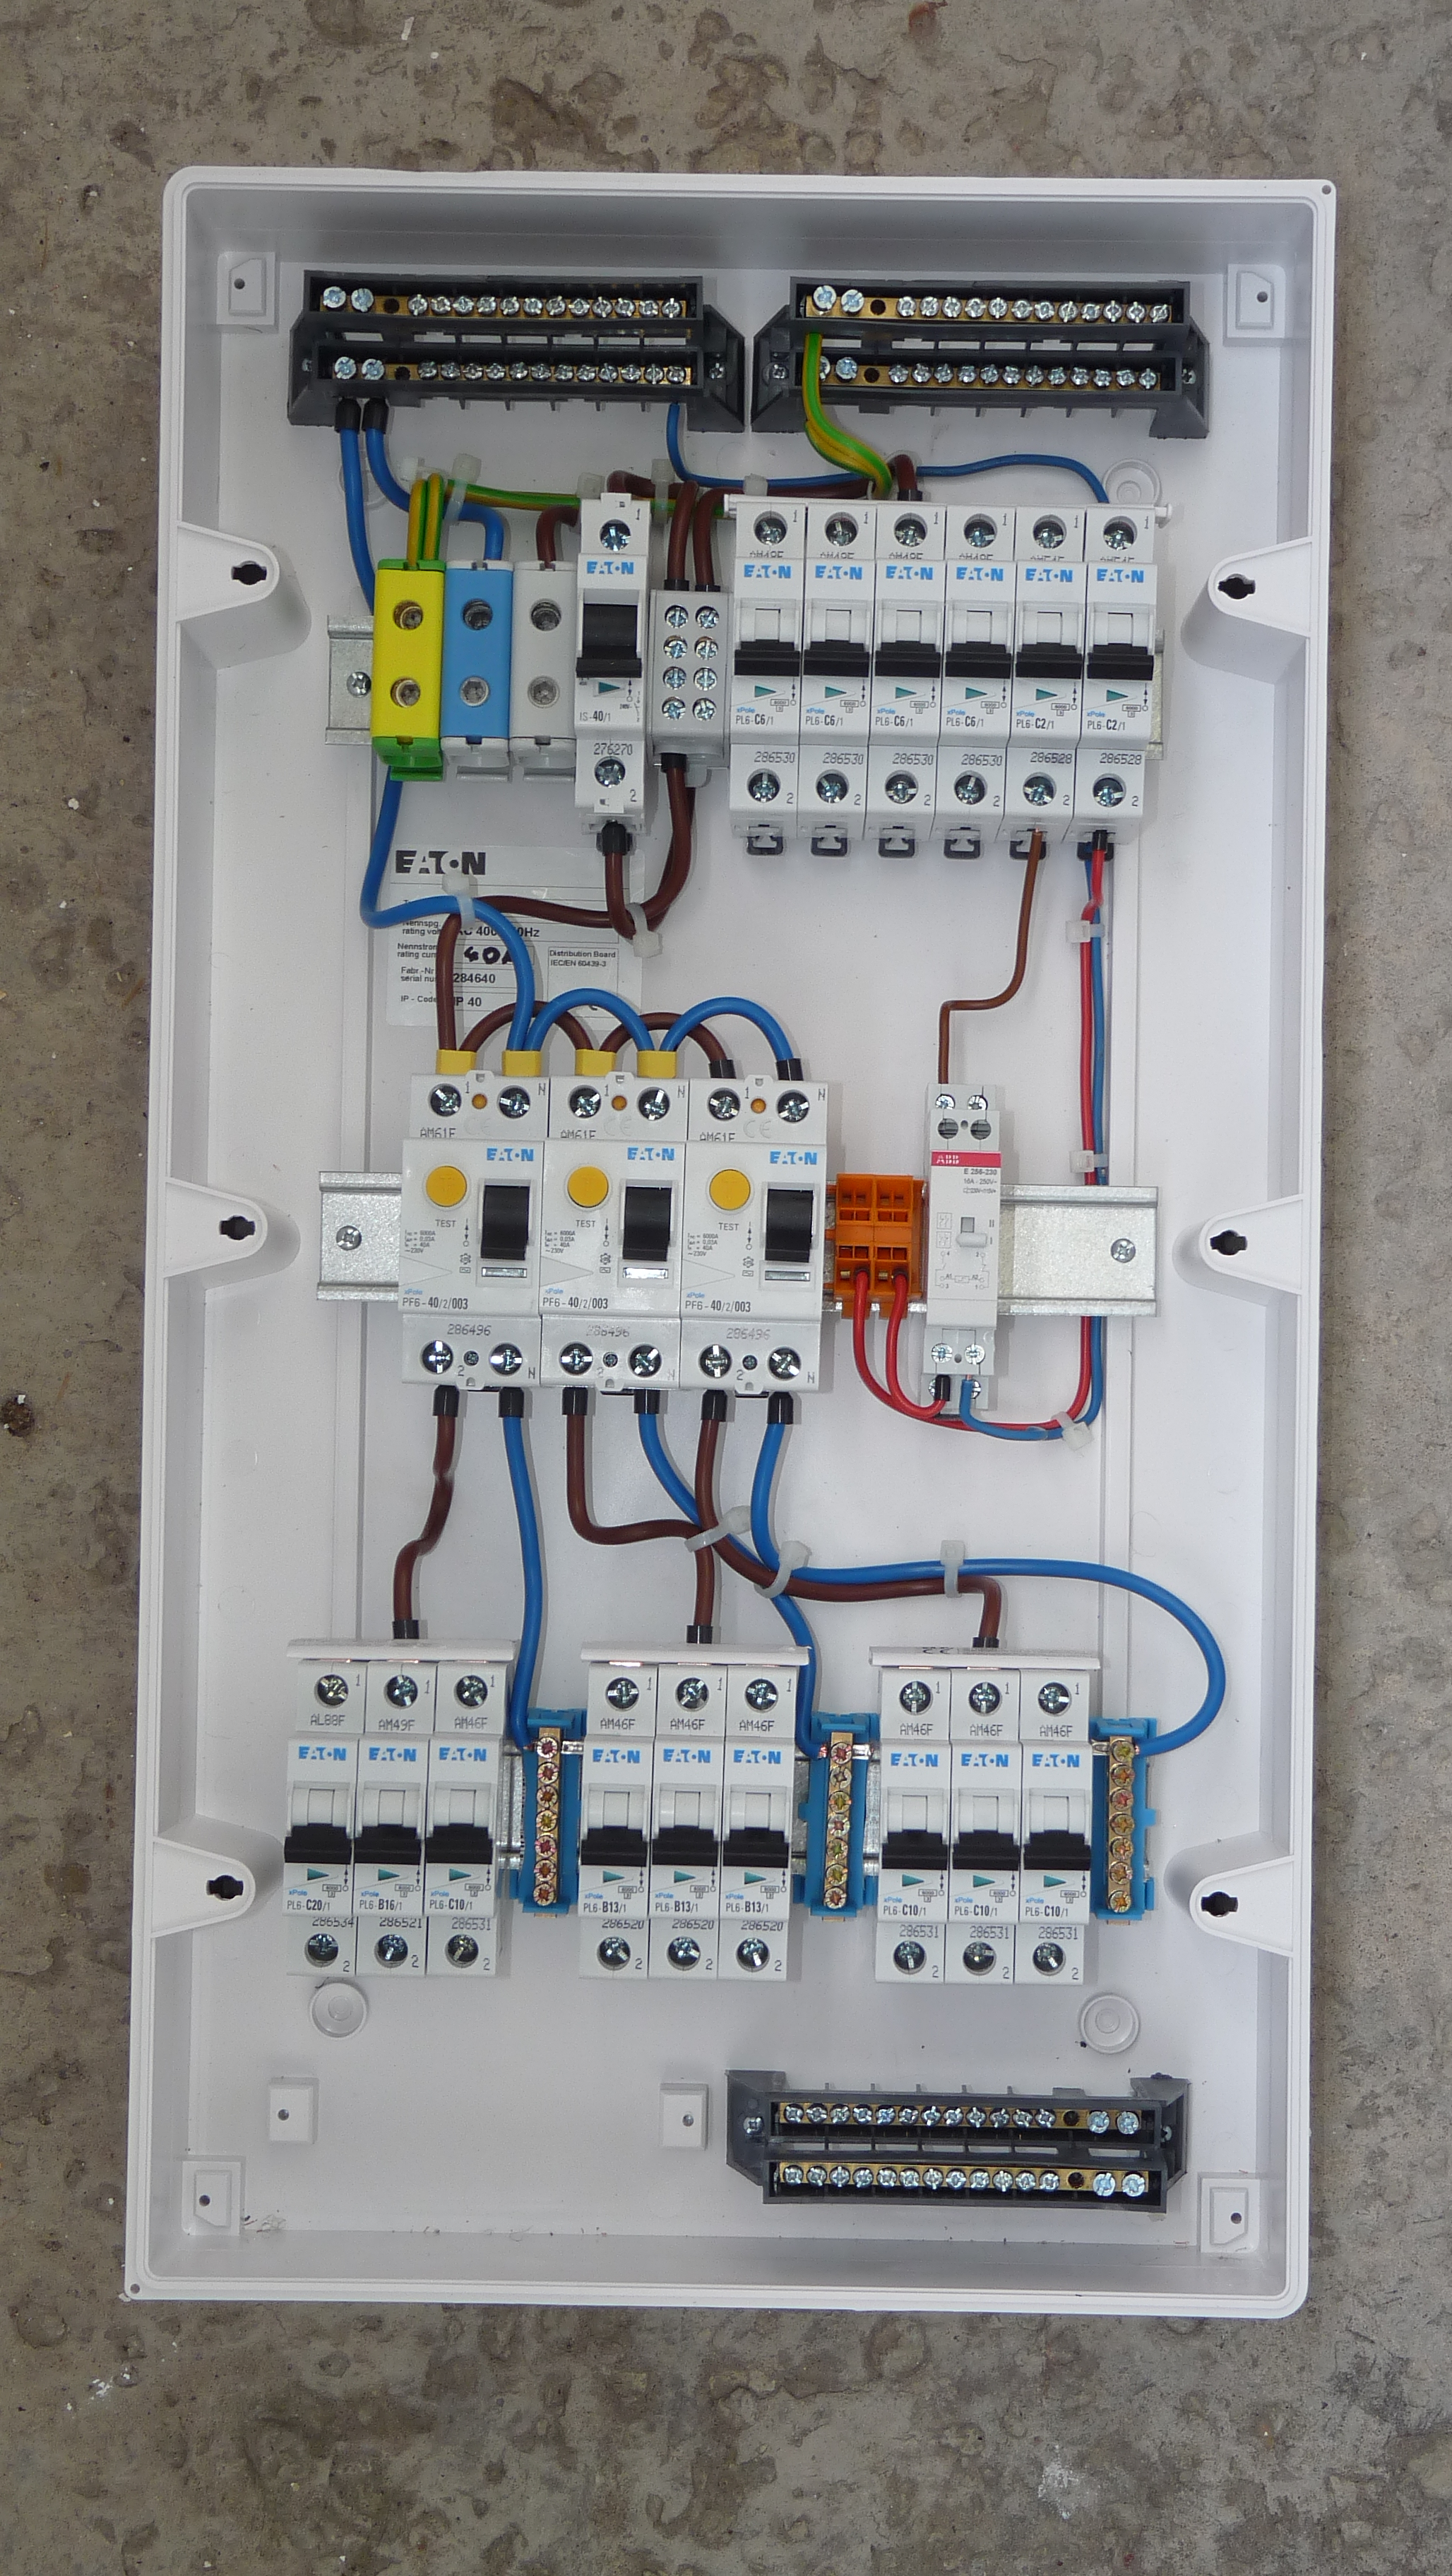 House Electric Fuse Box Holder Wiring Diagram Libraries Electrical Types Home Built Todayshome Schematic Data